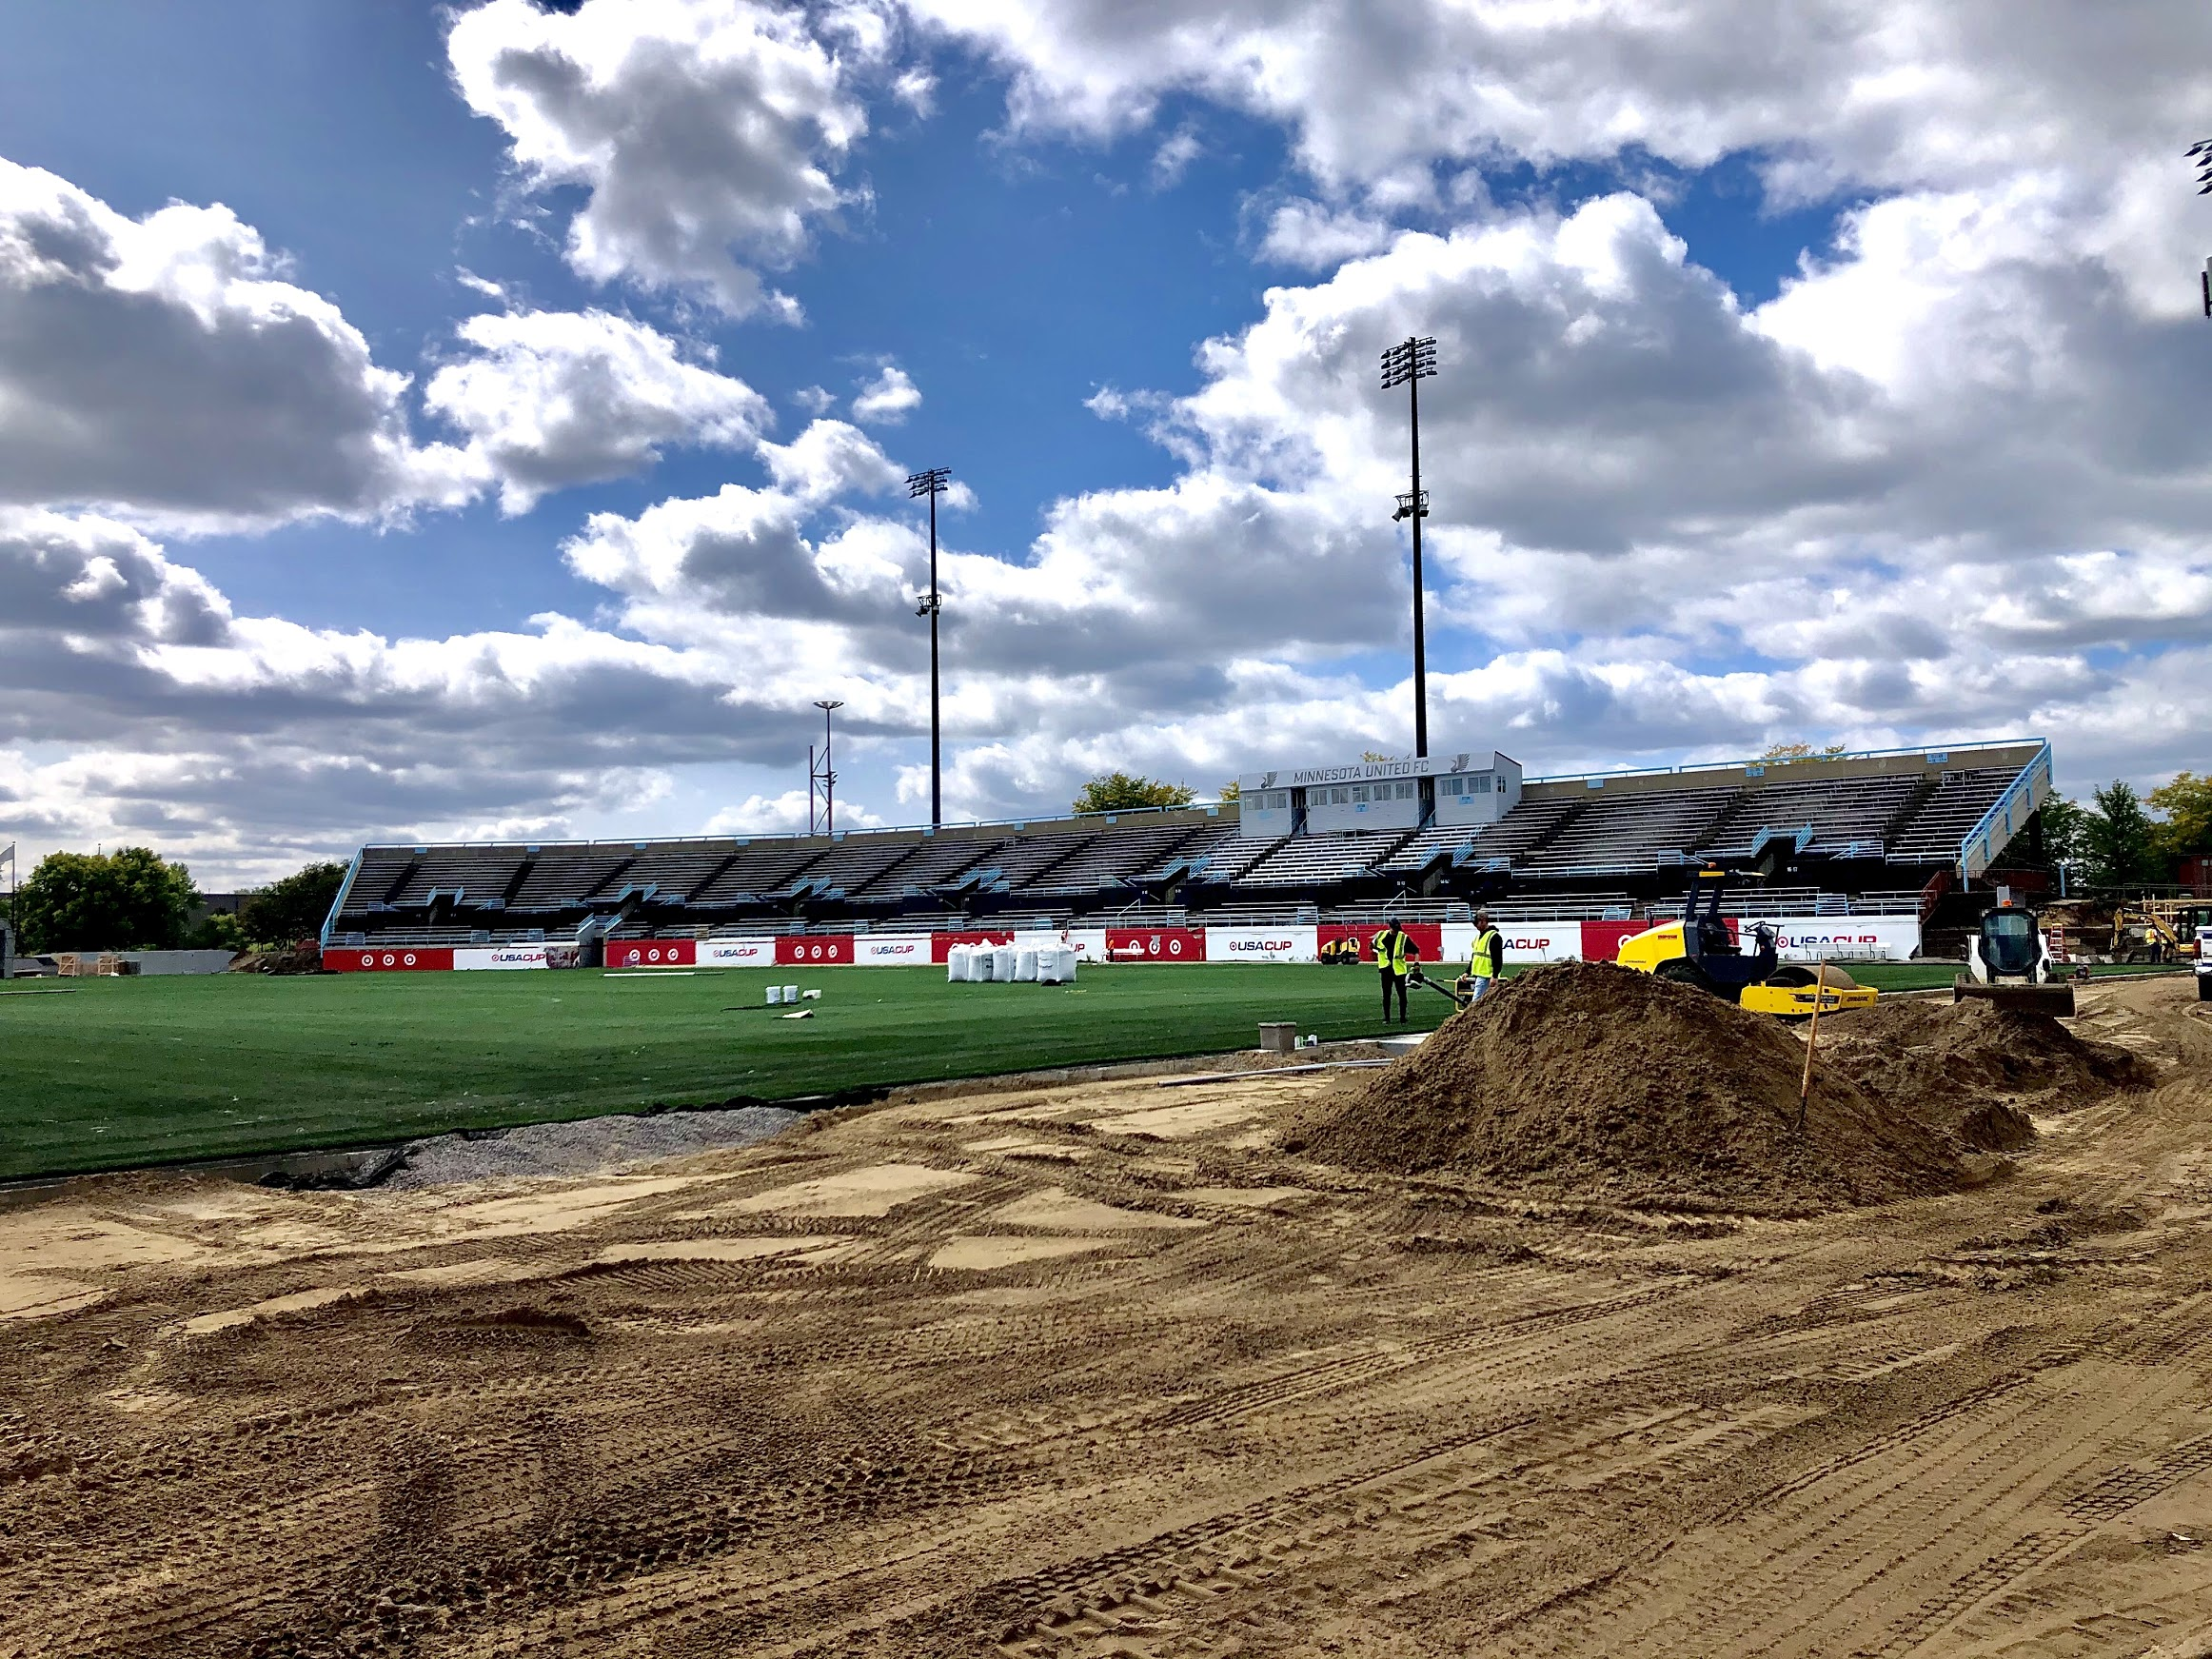 Construction for the new M Health Fairview Dome began on the stadium field.